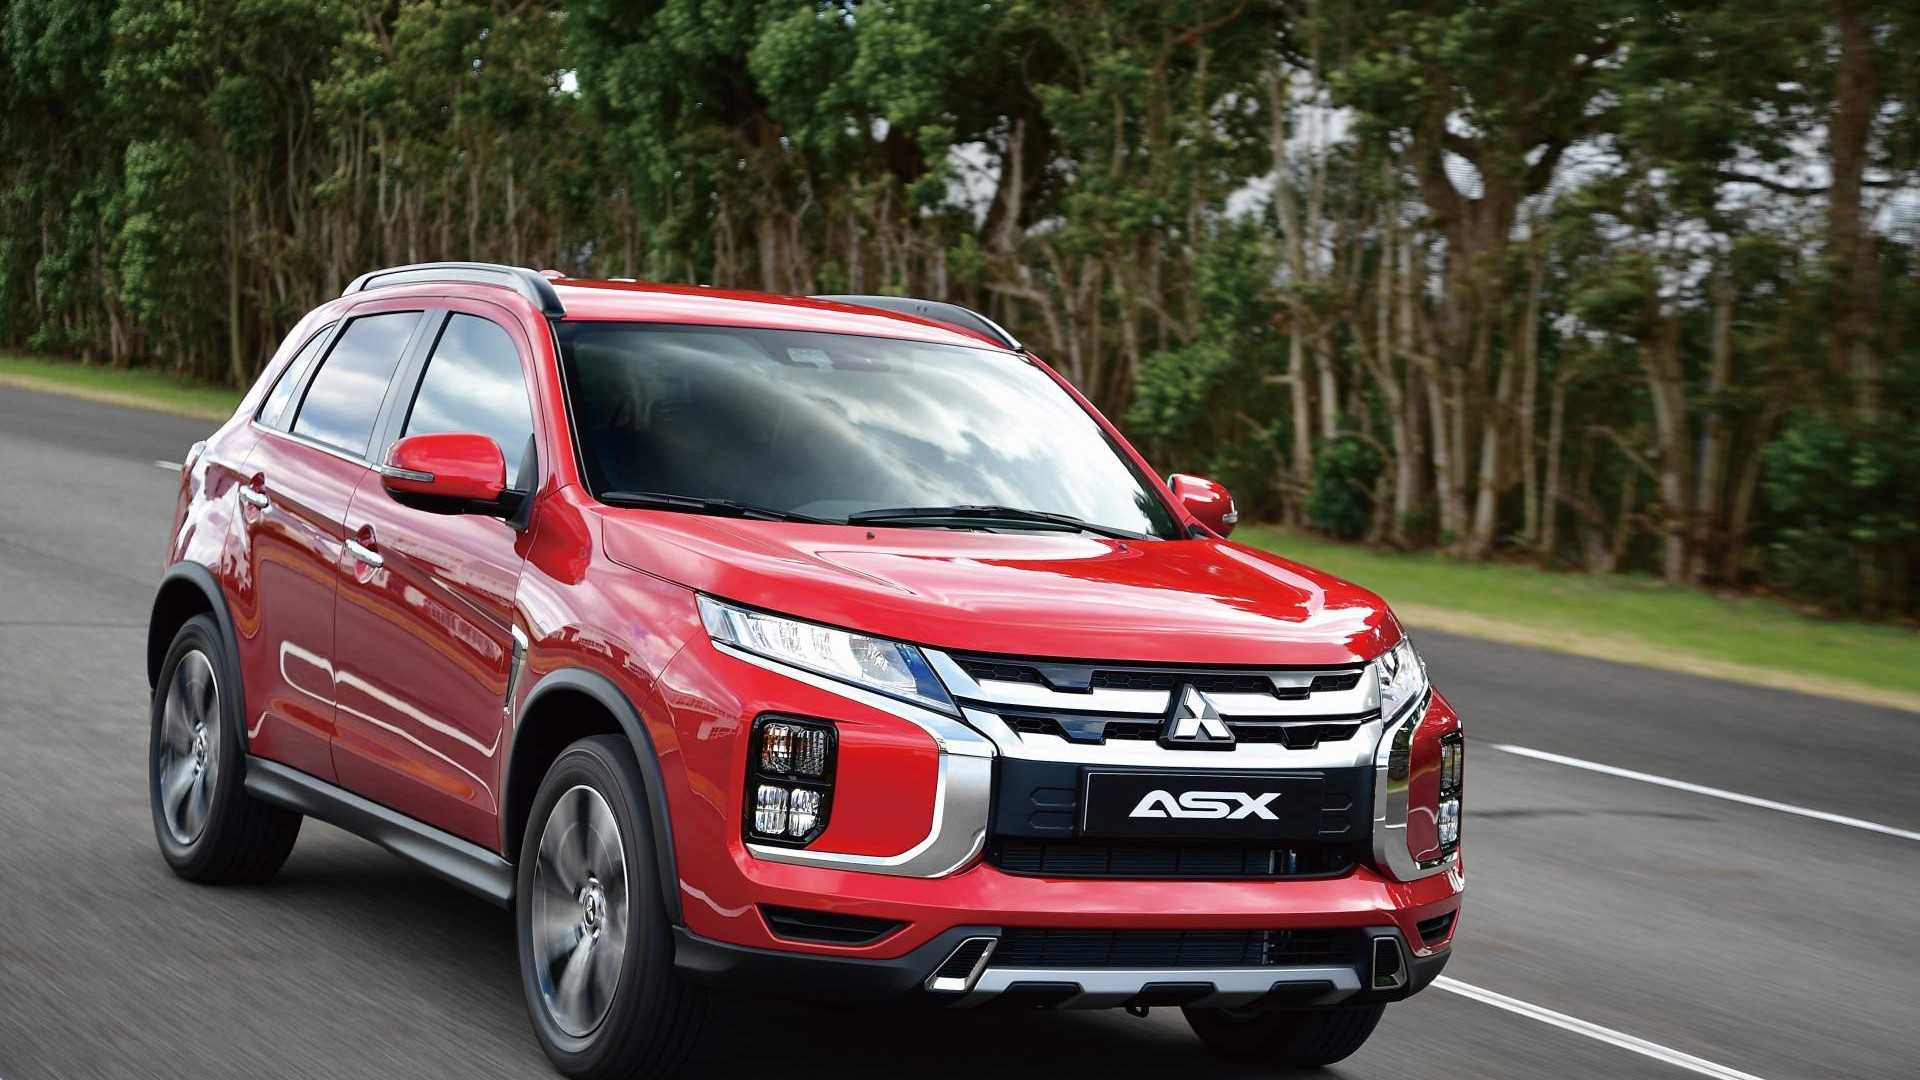 35 All New Mitsubishi Asx 2020 Dimensions Pricing for Mitsubishi Asx 2020 Dimensions